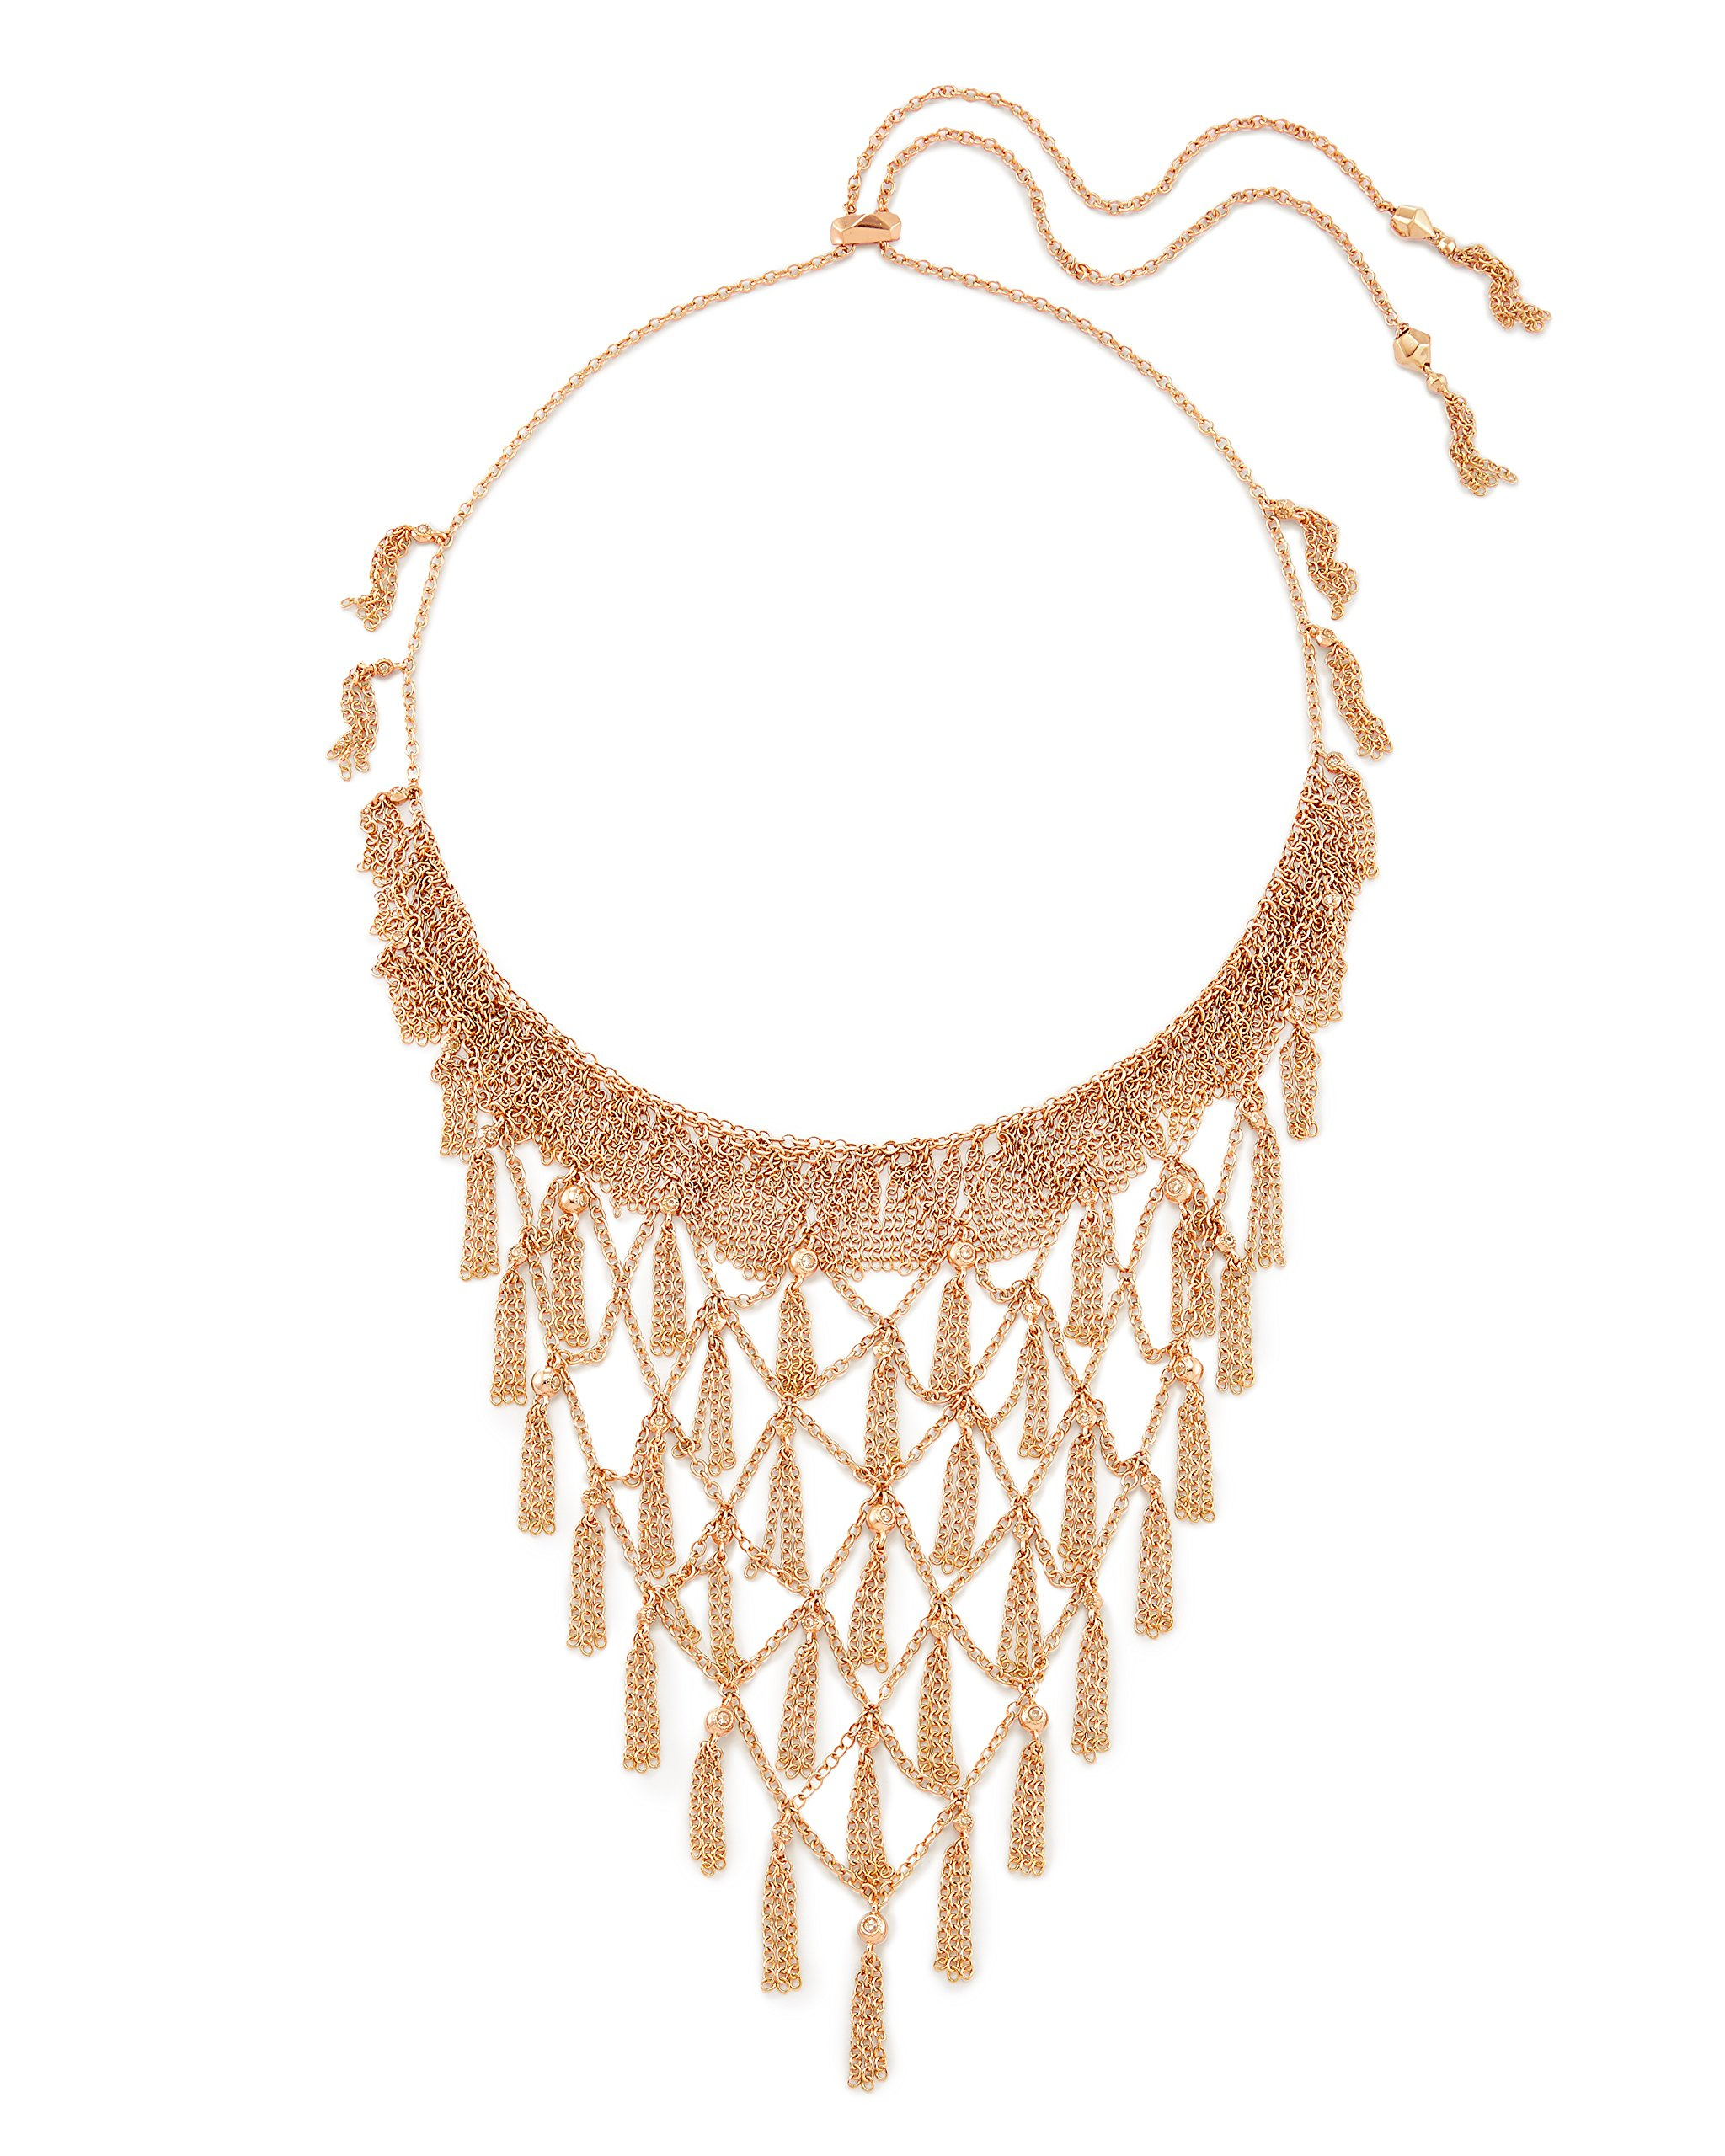 Kendra Scott Georgina Necklace in Rose Gold Plated and Cubic Zirconia